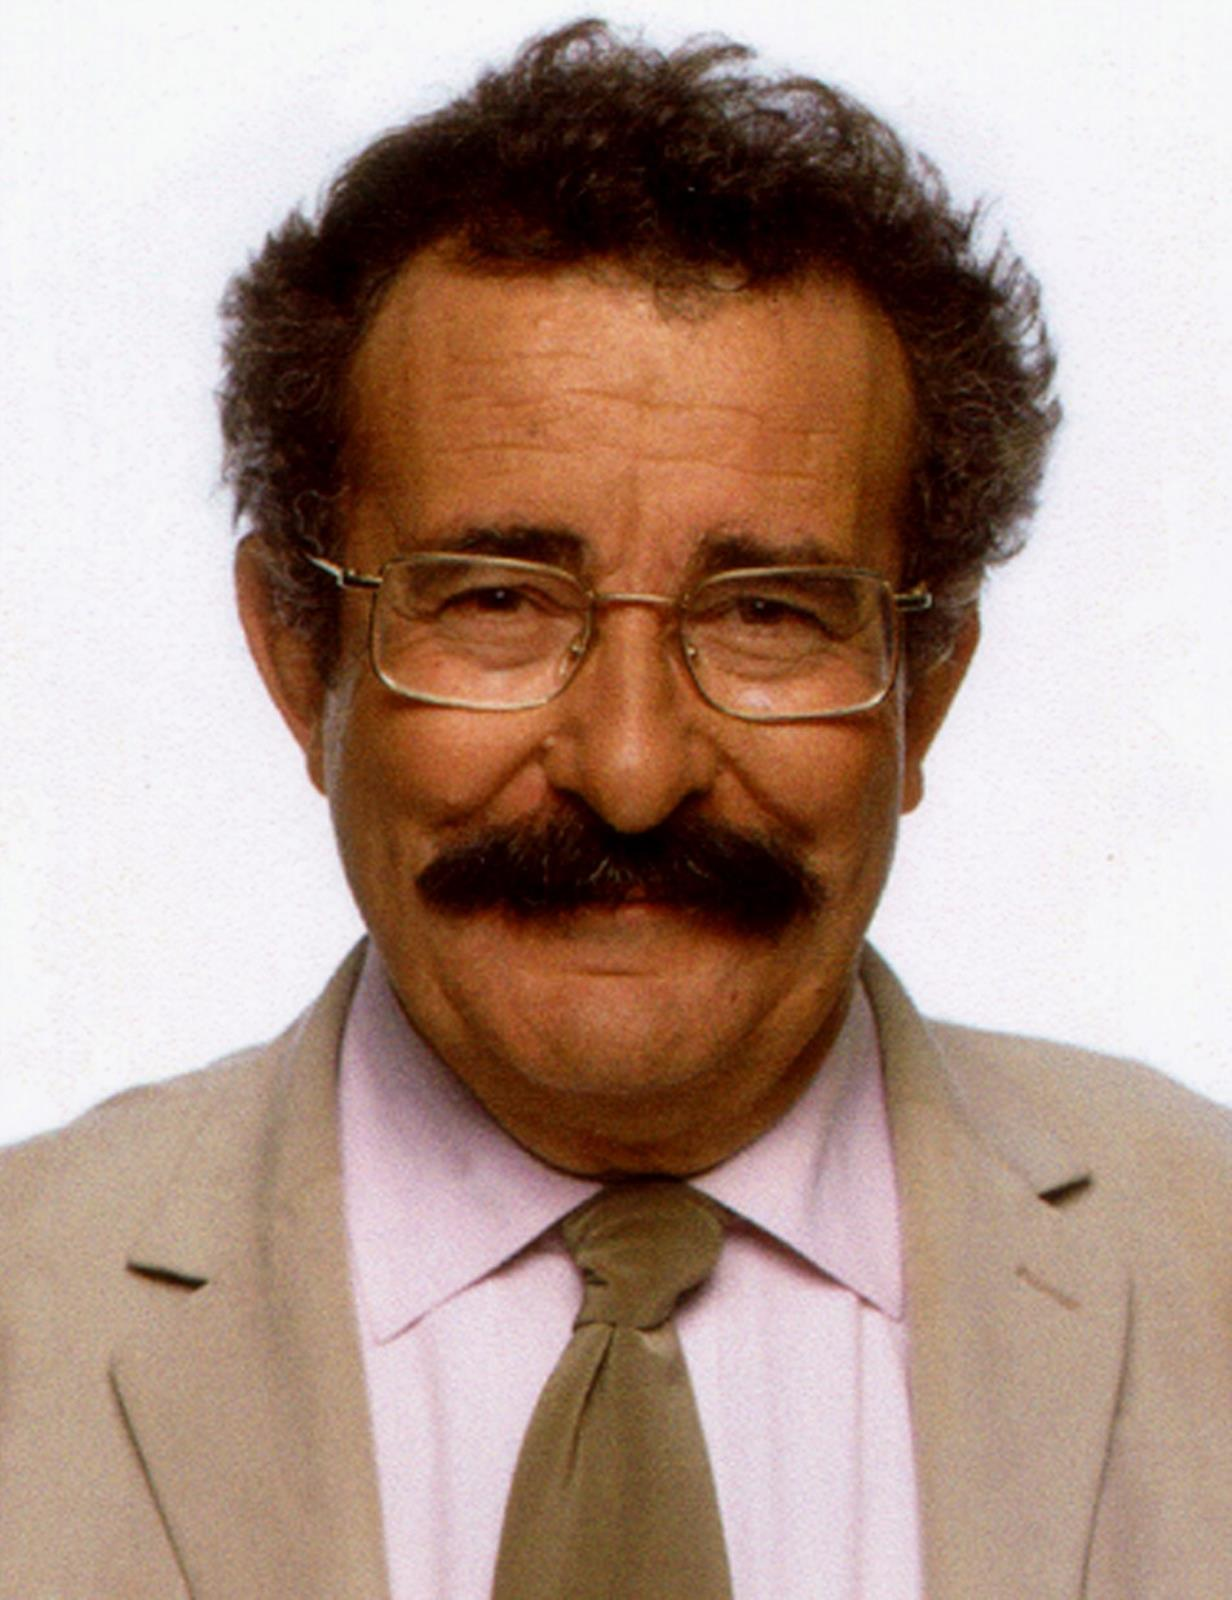 Annual Lecture and Dinner - 'Perils of Neglecting History' given by Lord Robert Winston